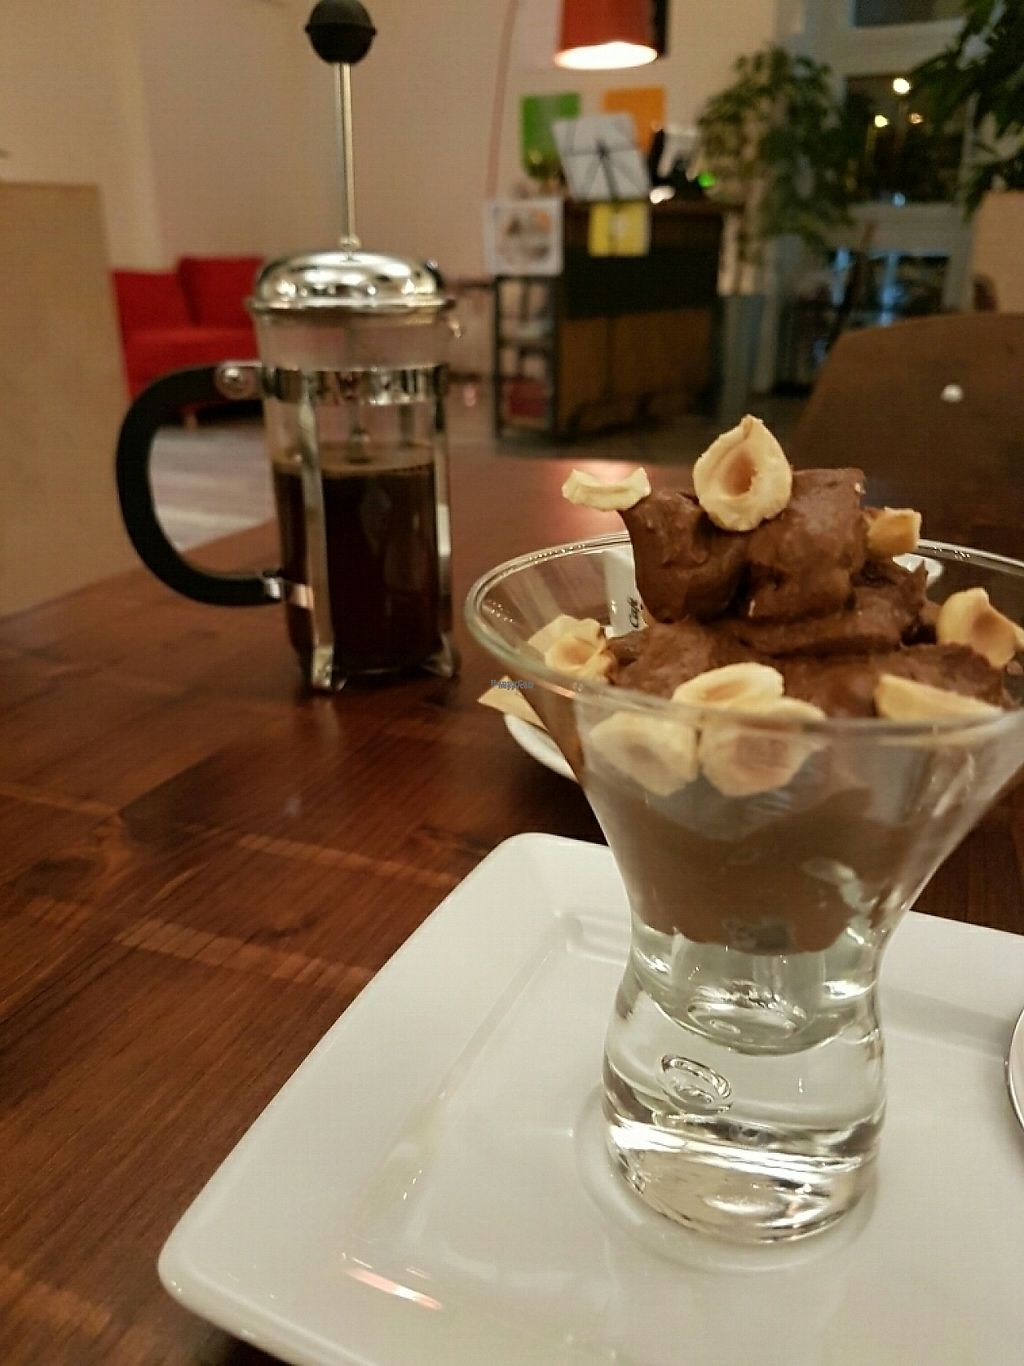 """Photo of VegetariAmoci  by <a href=""""/members/profile/Chlo%C3%A9Chantal"""">ChloéChantal</a> <br/>Avocado choco mousse (vegano) <br/> March 25, 2017  - <a href='/contact/abuse/image/69018/240889'>Report</a>"""